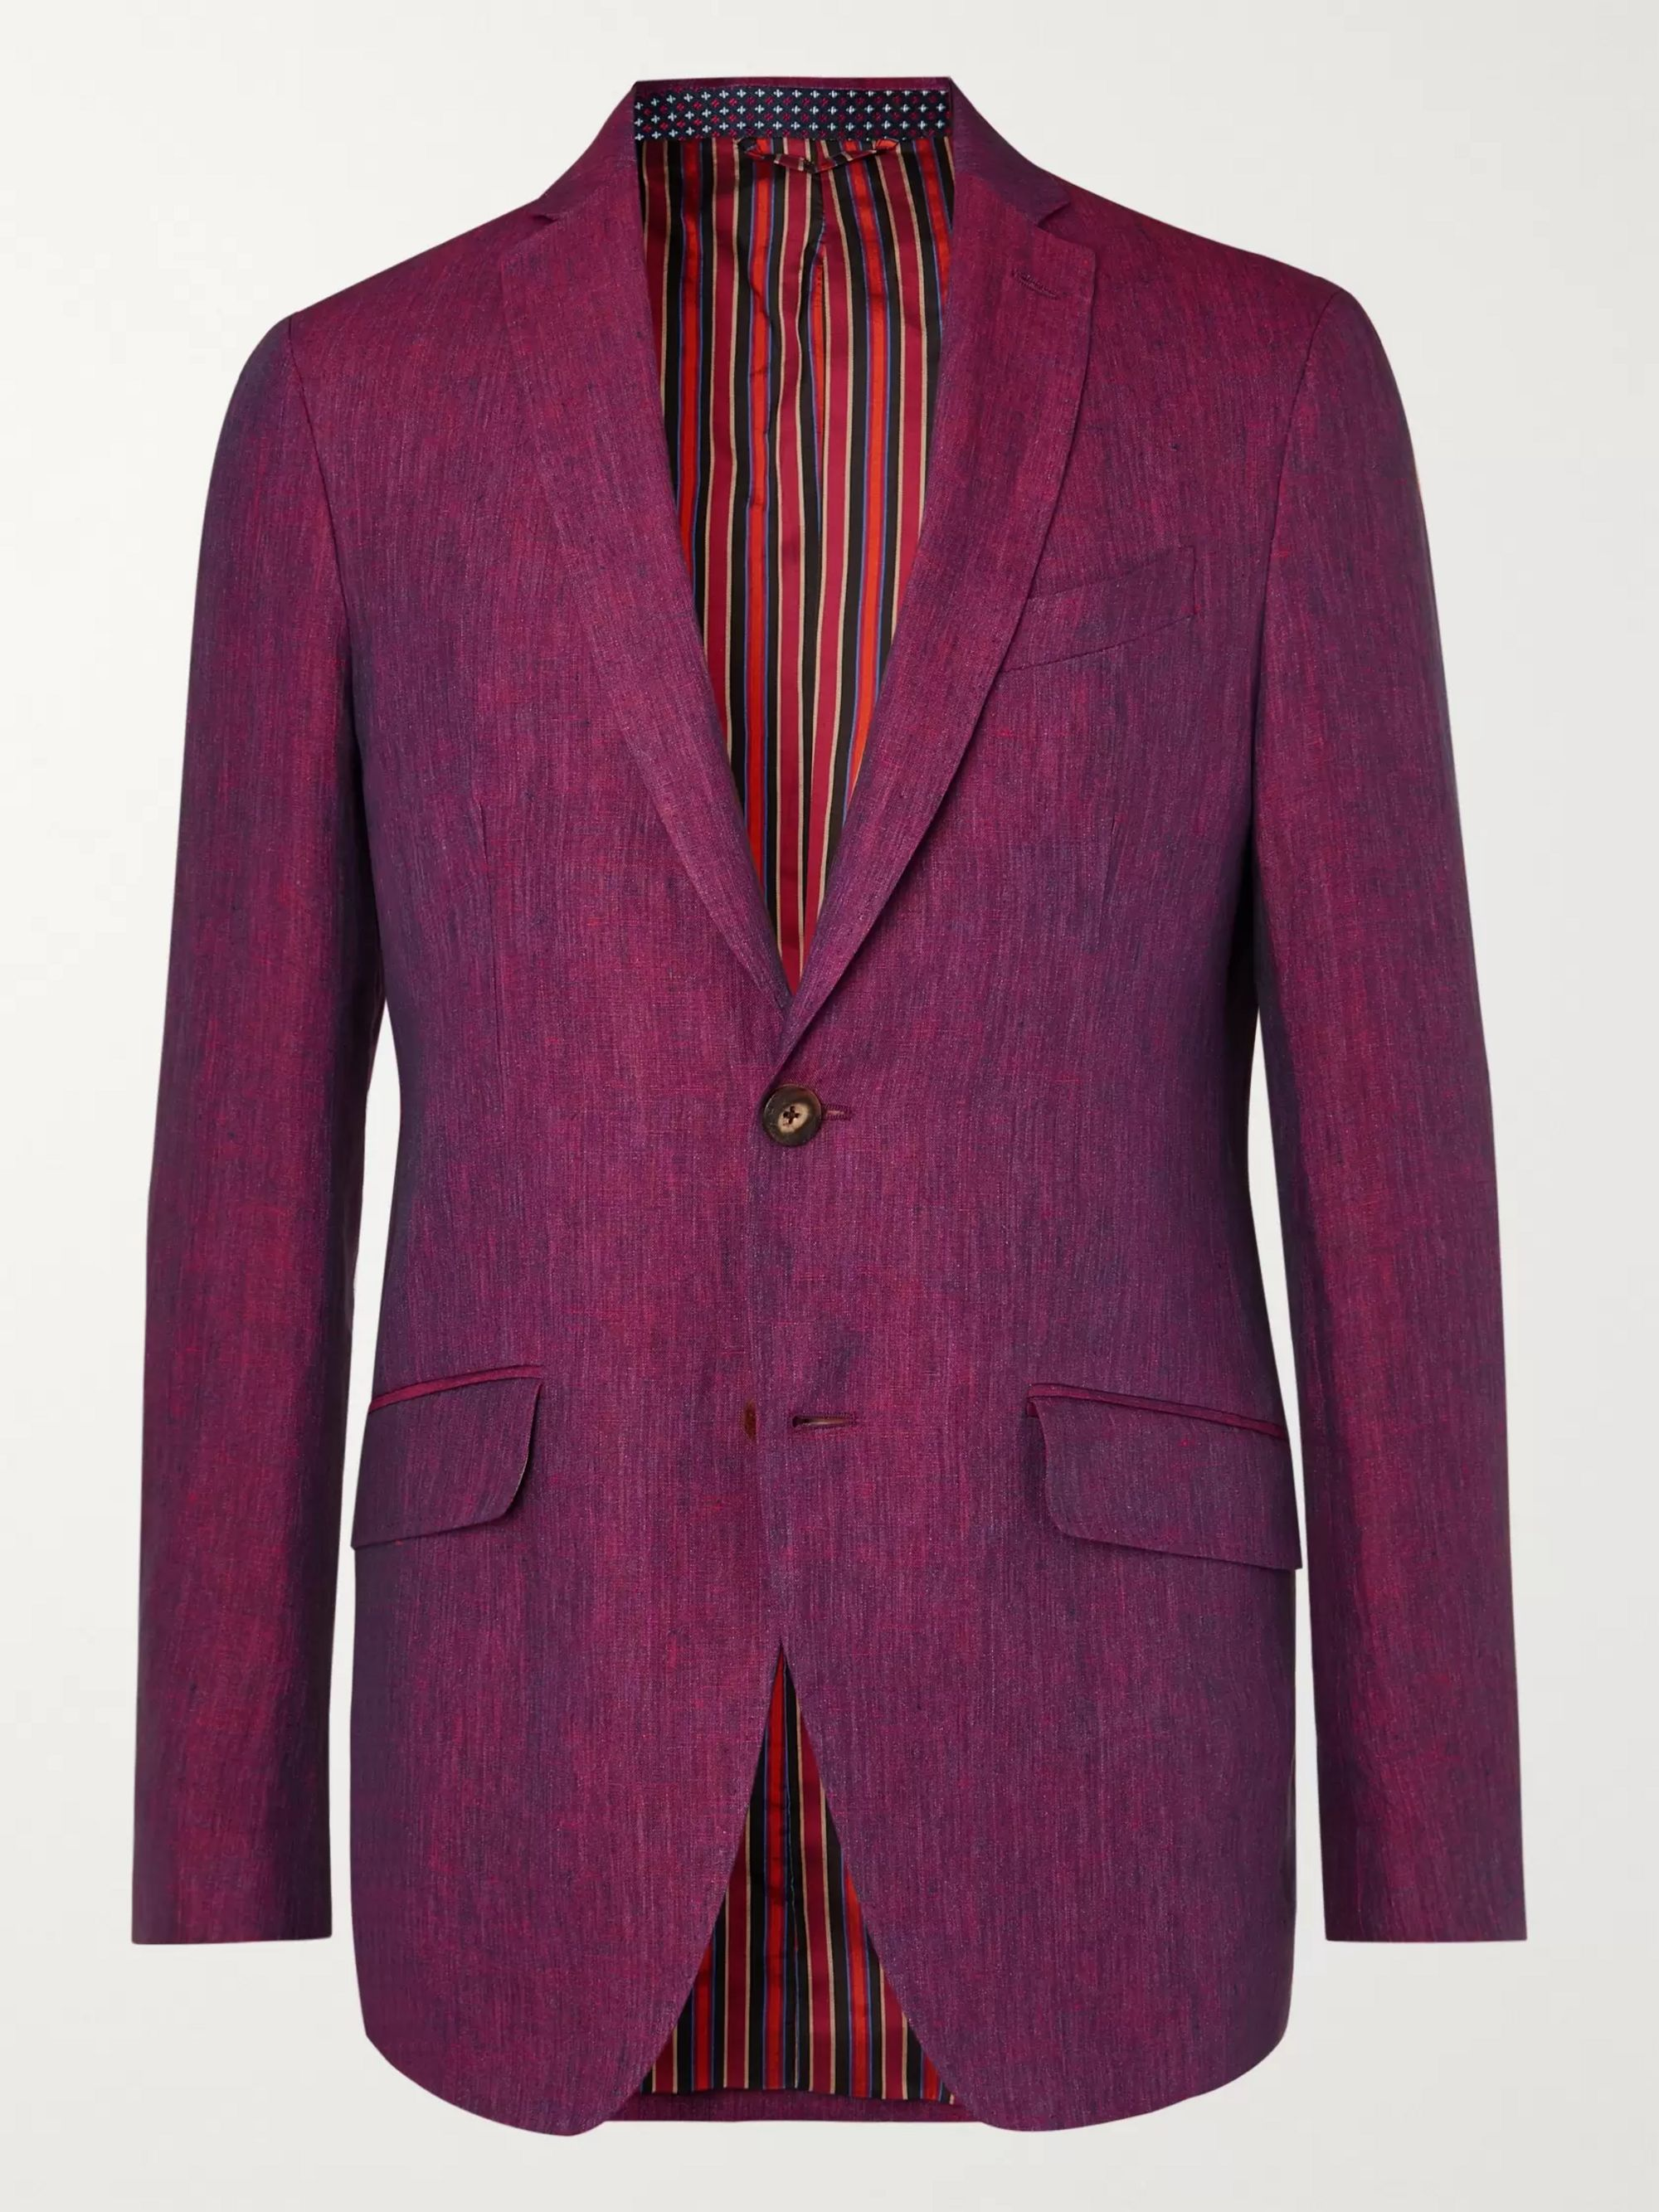 Etro Burgundy Slim-Fit Linen Suit Jacket